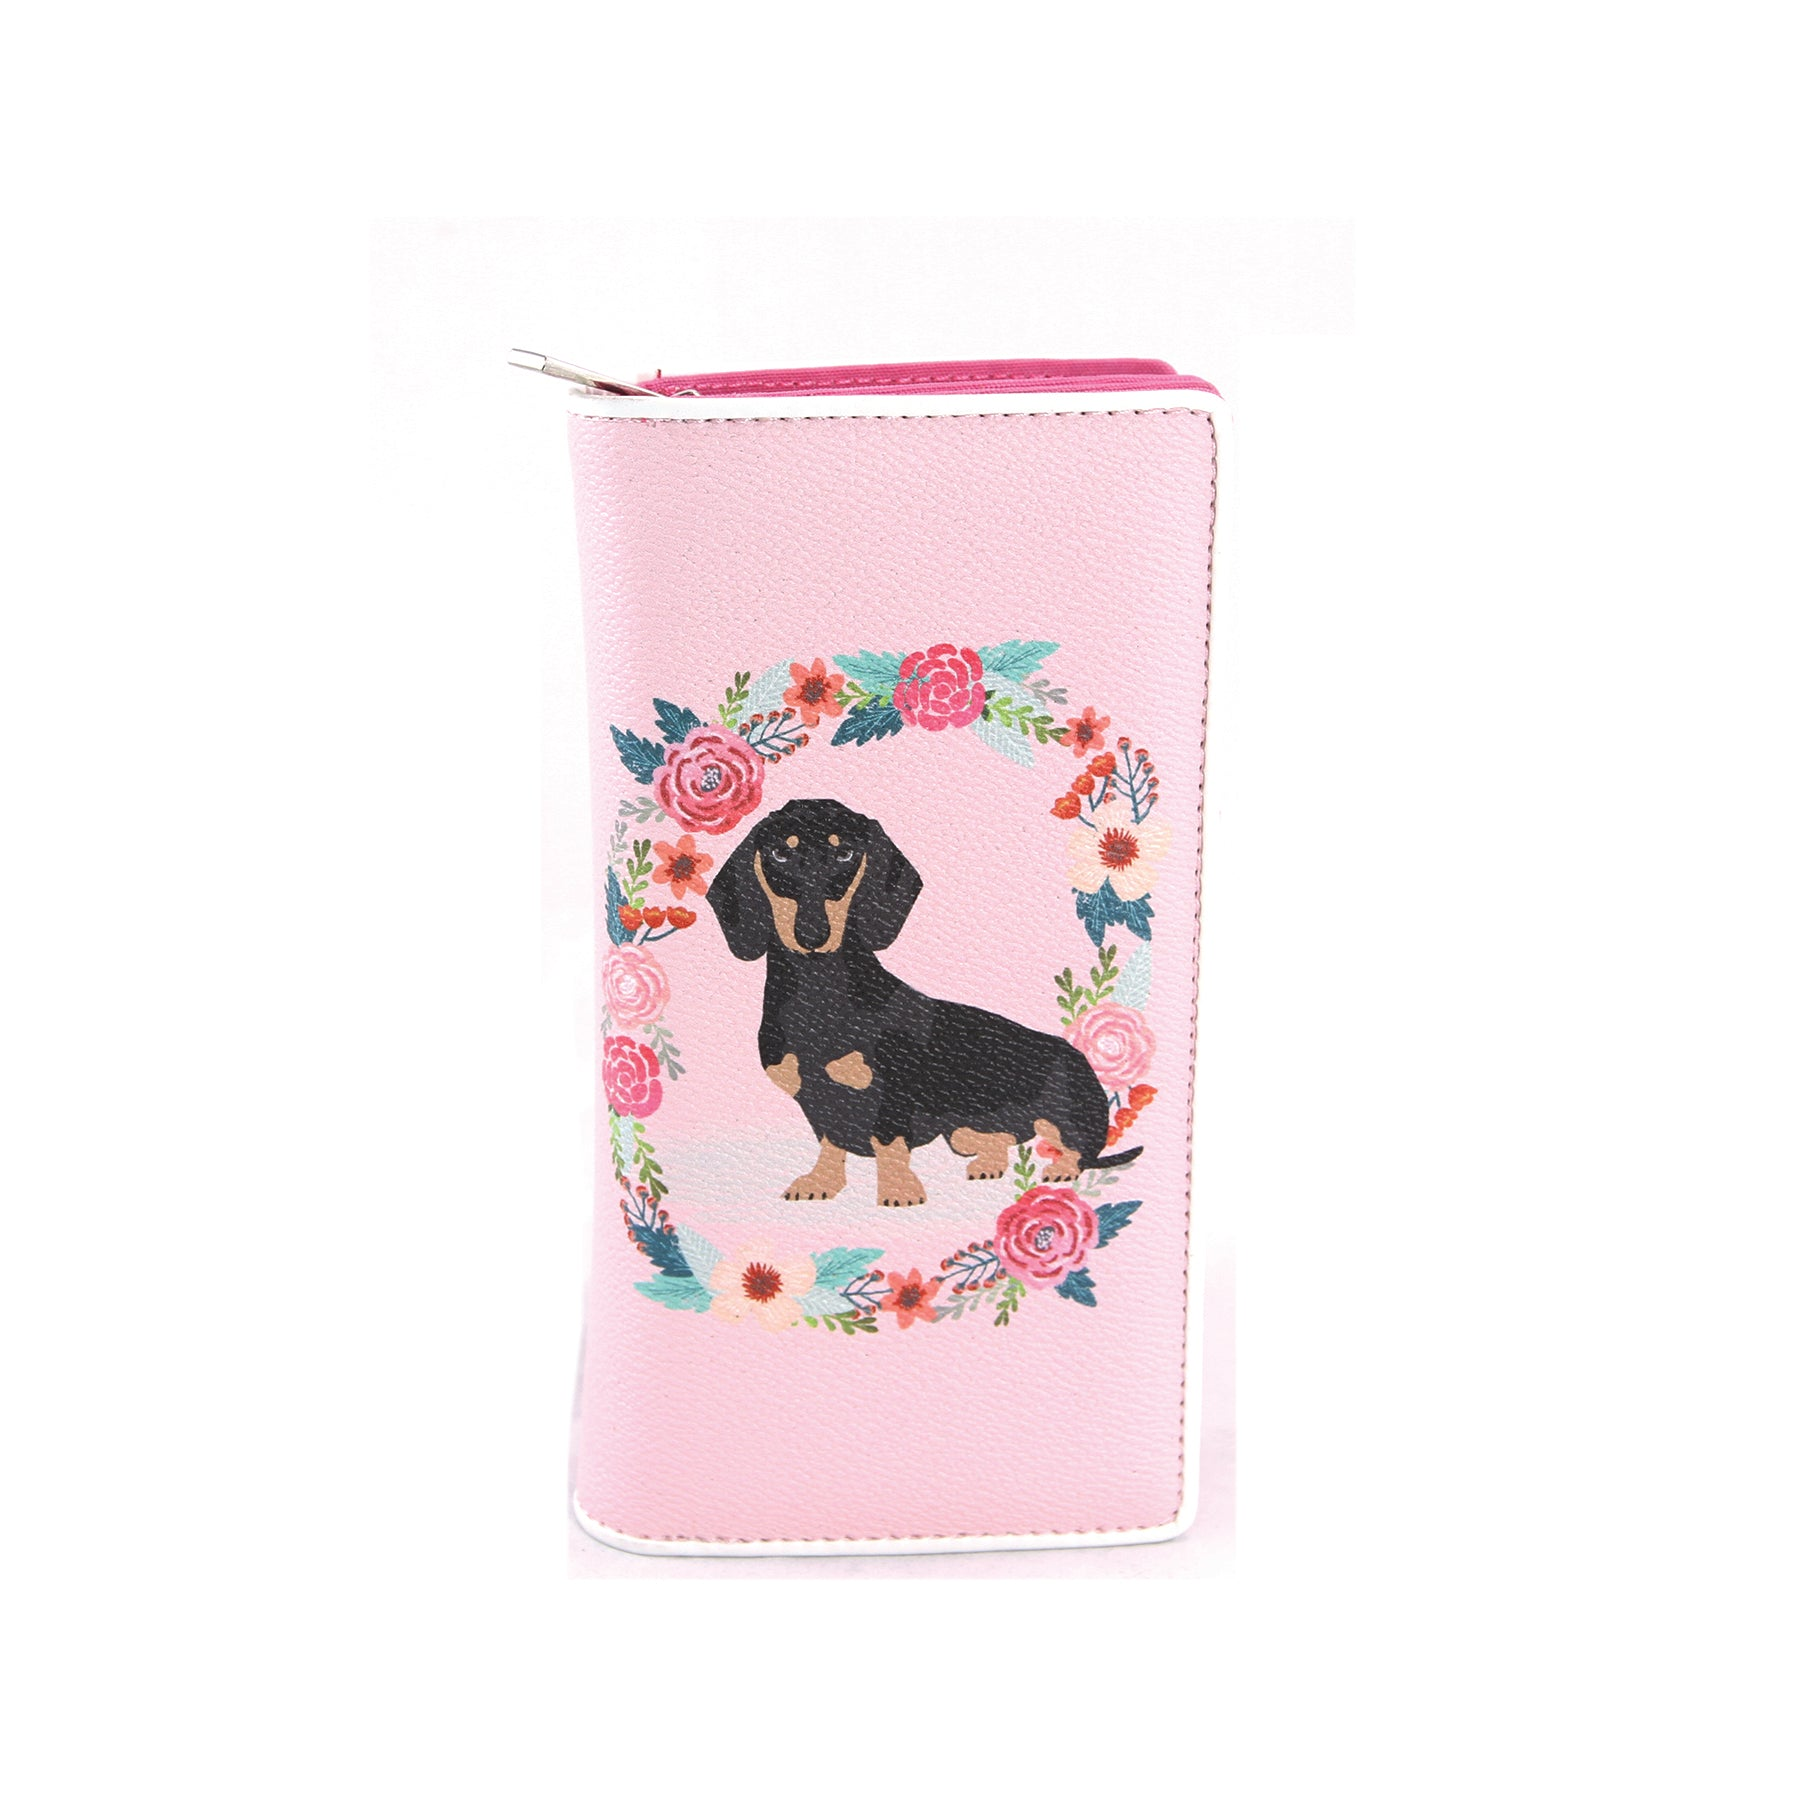 Floral Dachshund Wallet in Vinyl Material closed front view